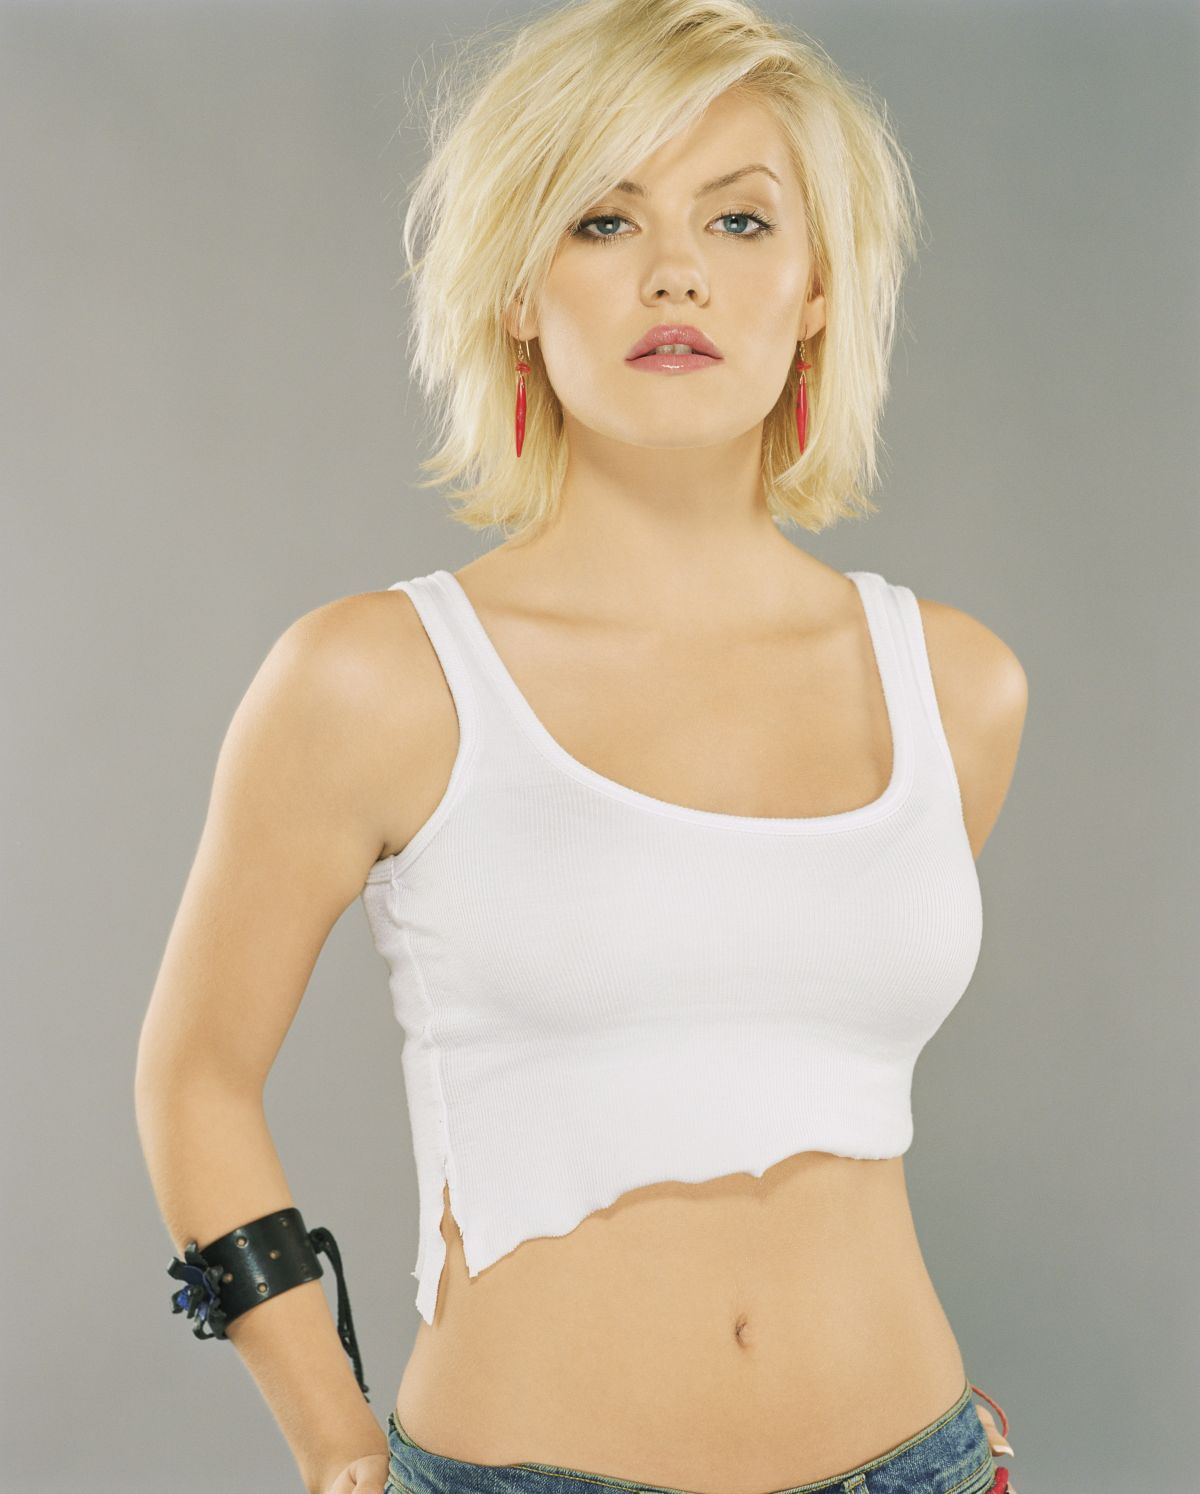 Best from the Past - ELISHA CUTHBERT for TV Guide, 2003